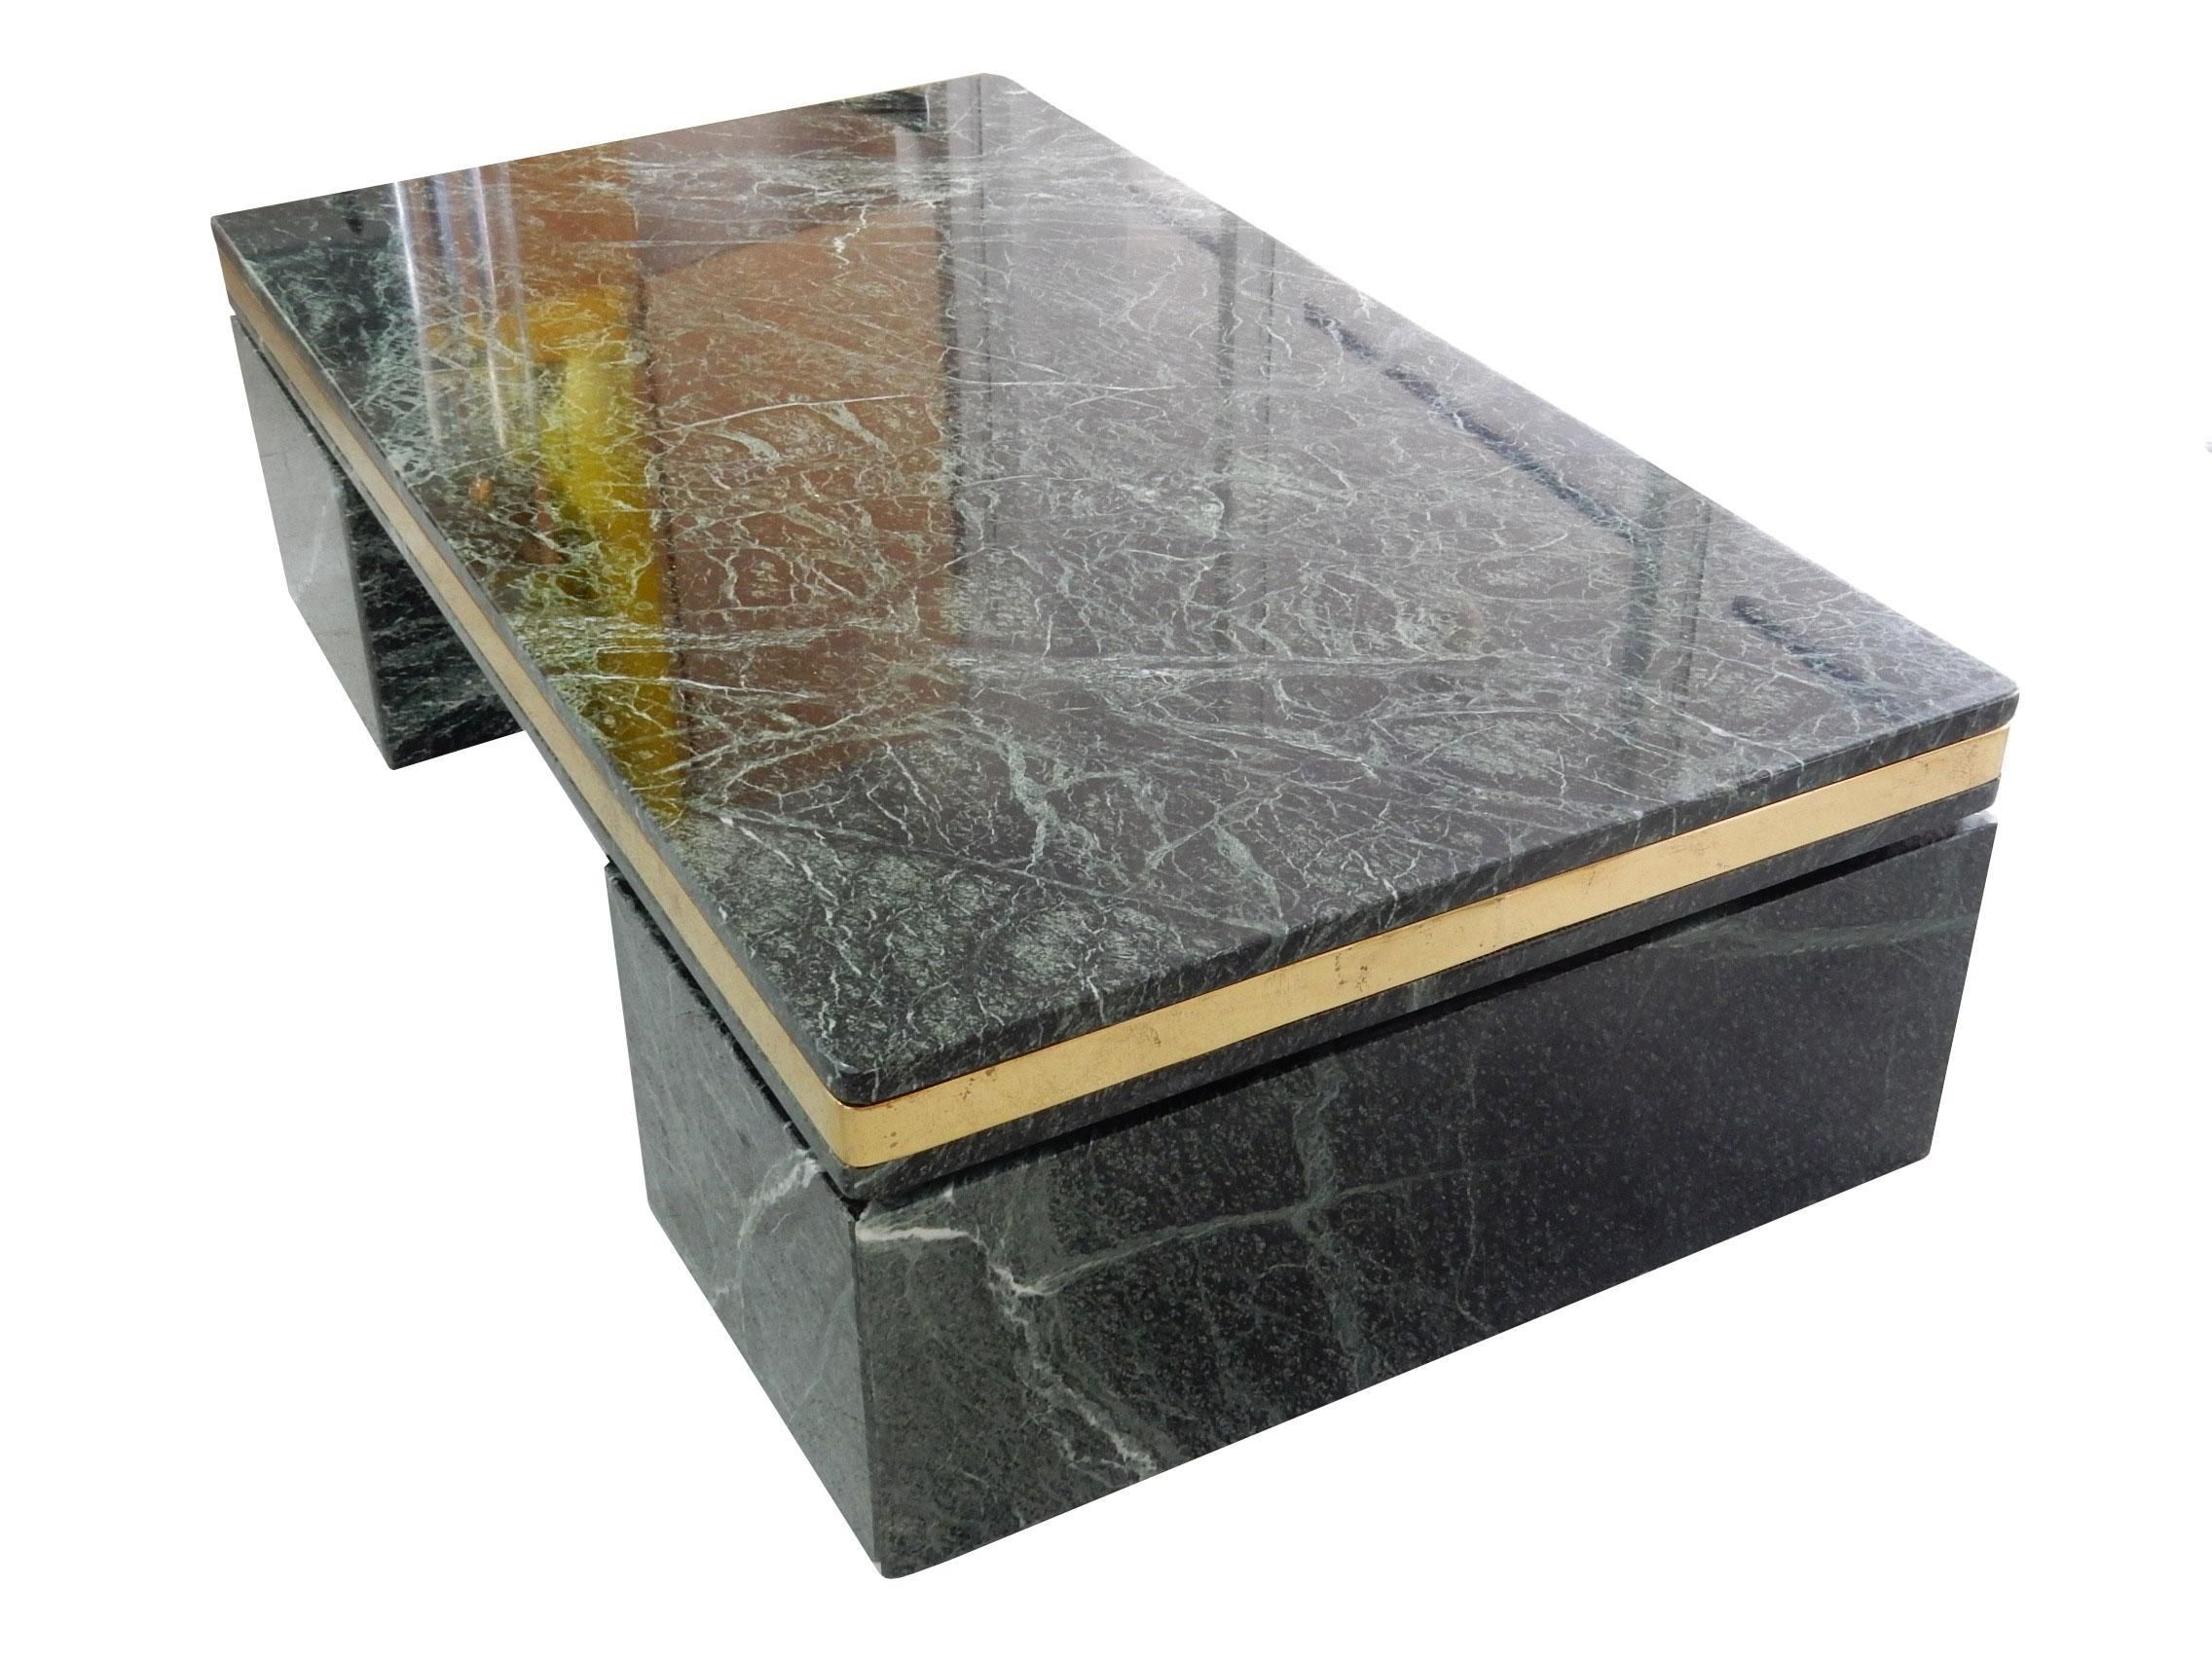 This vintage green marble coffee table is simple yet bold with a